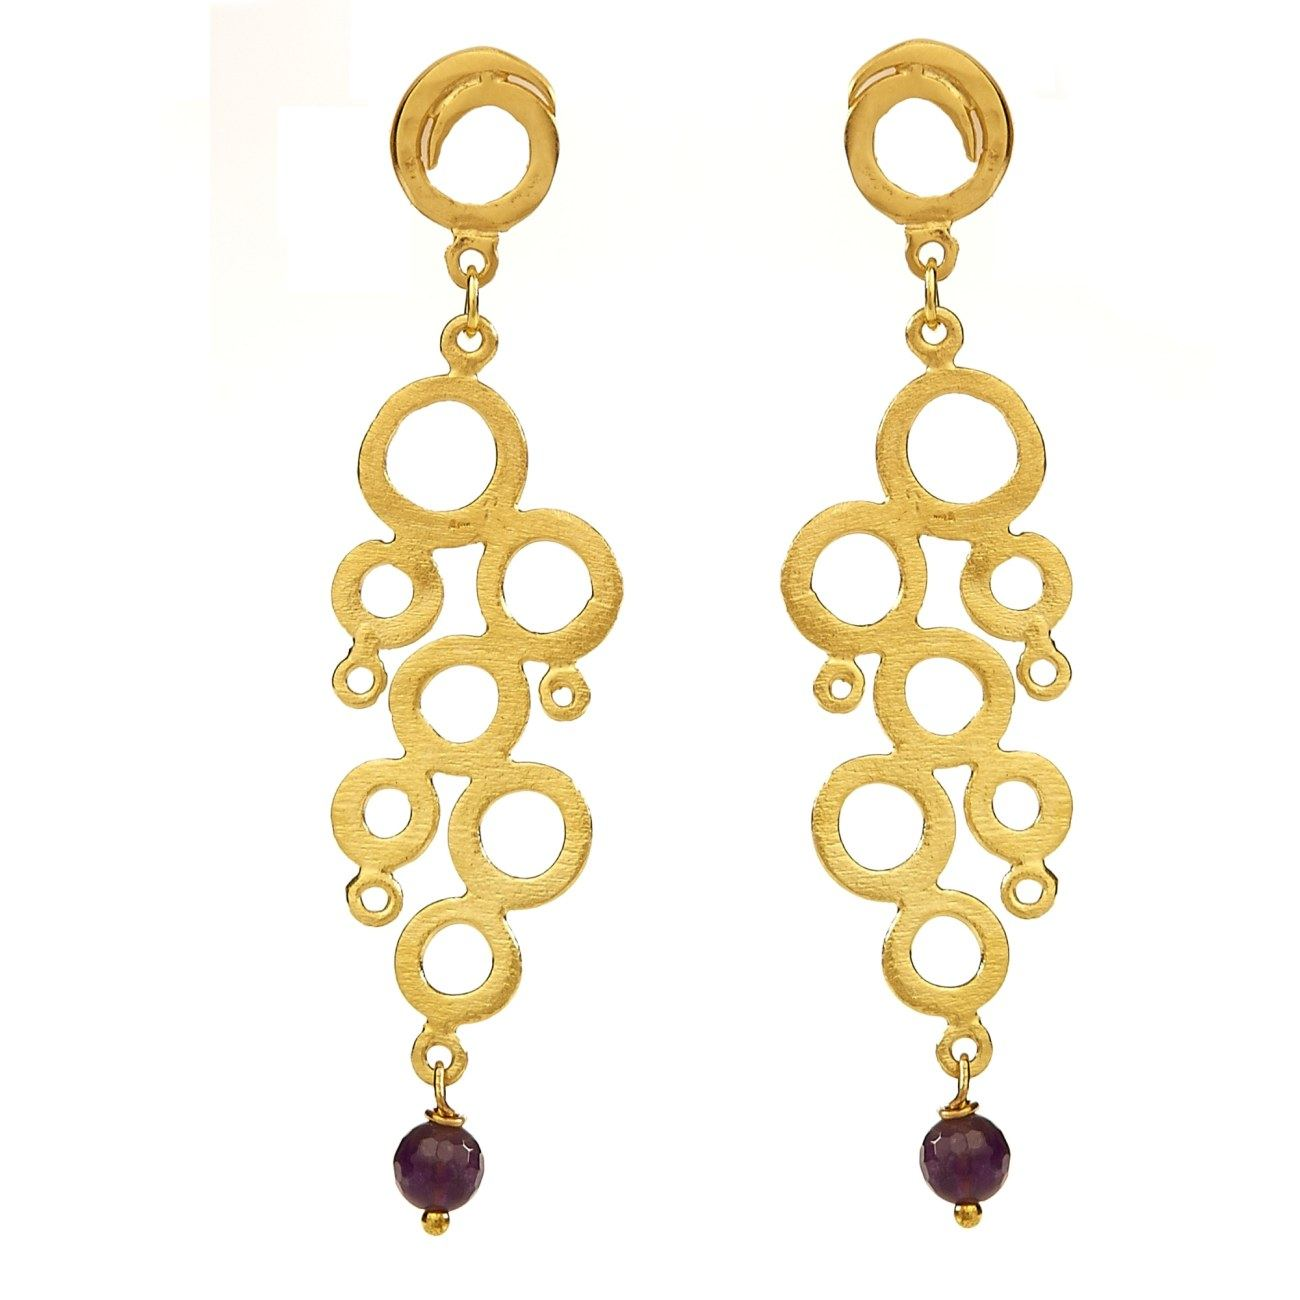 Fashion Jewelry Earrings, Gold Plated, Amethyst Gemstones, Grape ...